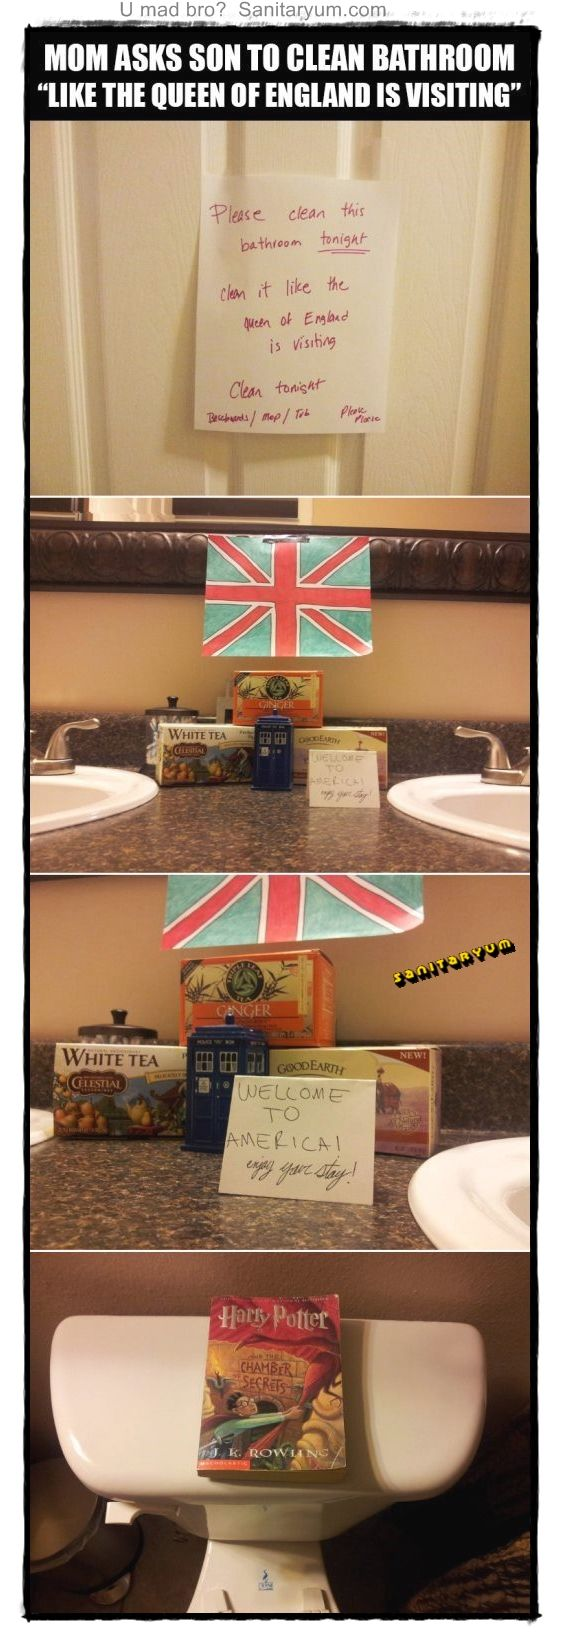 God save the Queen SANITARYUM! Clean Funny Pics! Sanitaryum: Funny Clean Humor Pics LOL VidsFeel Free To Like  Tag  Share  ... http://fb.me/humorwithin